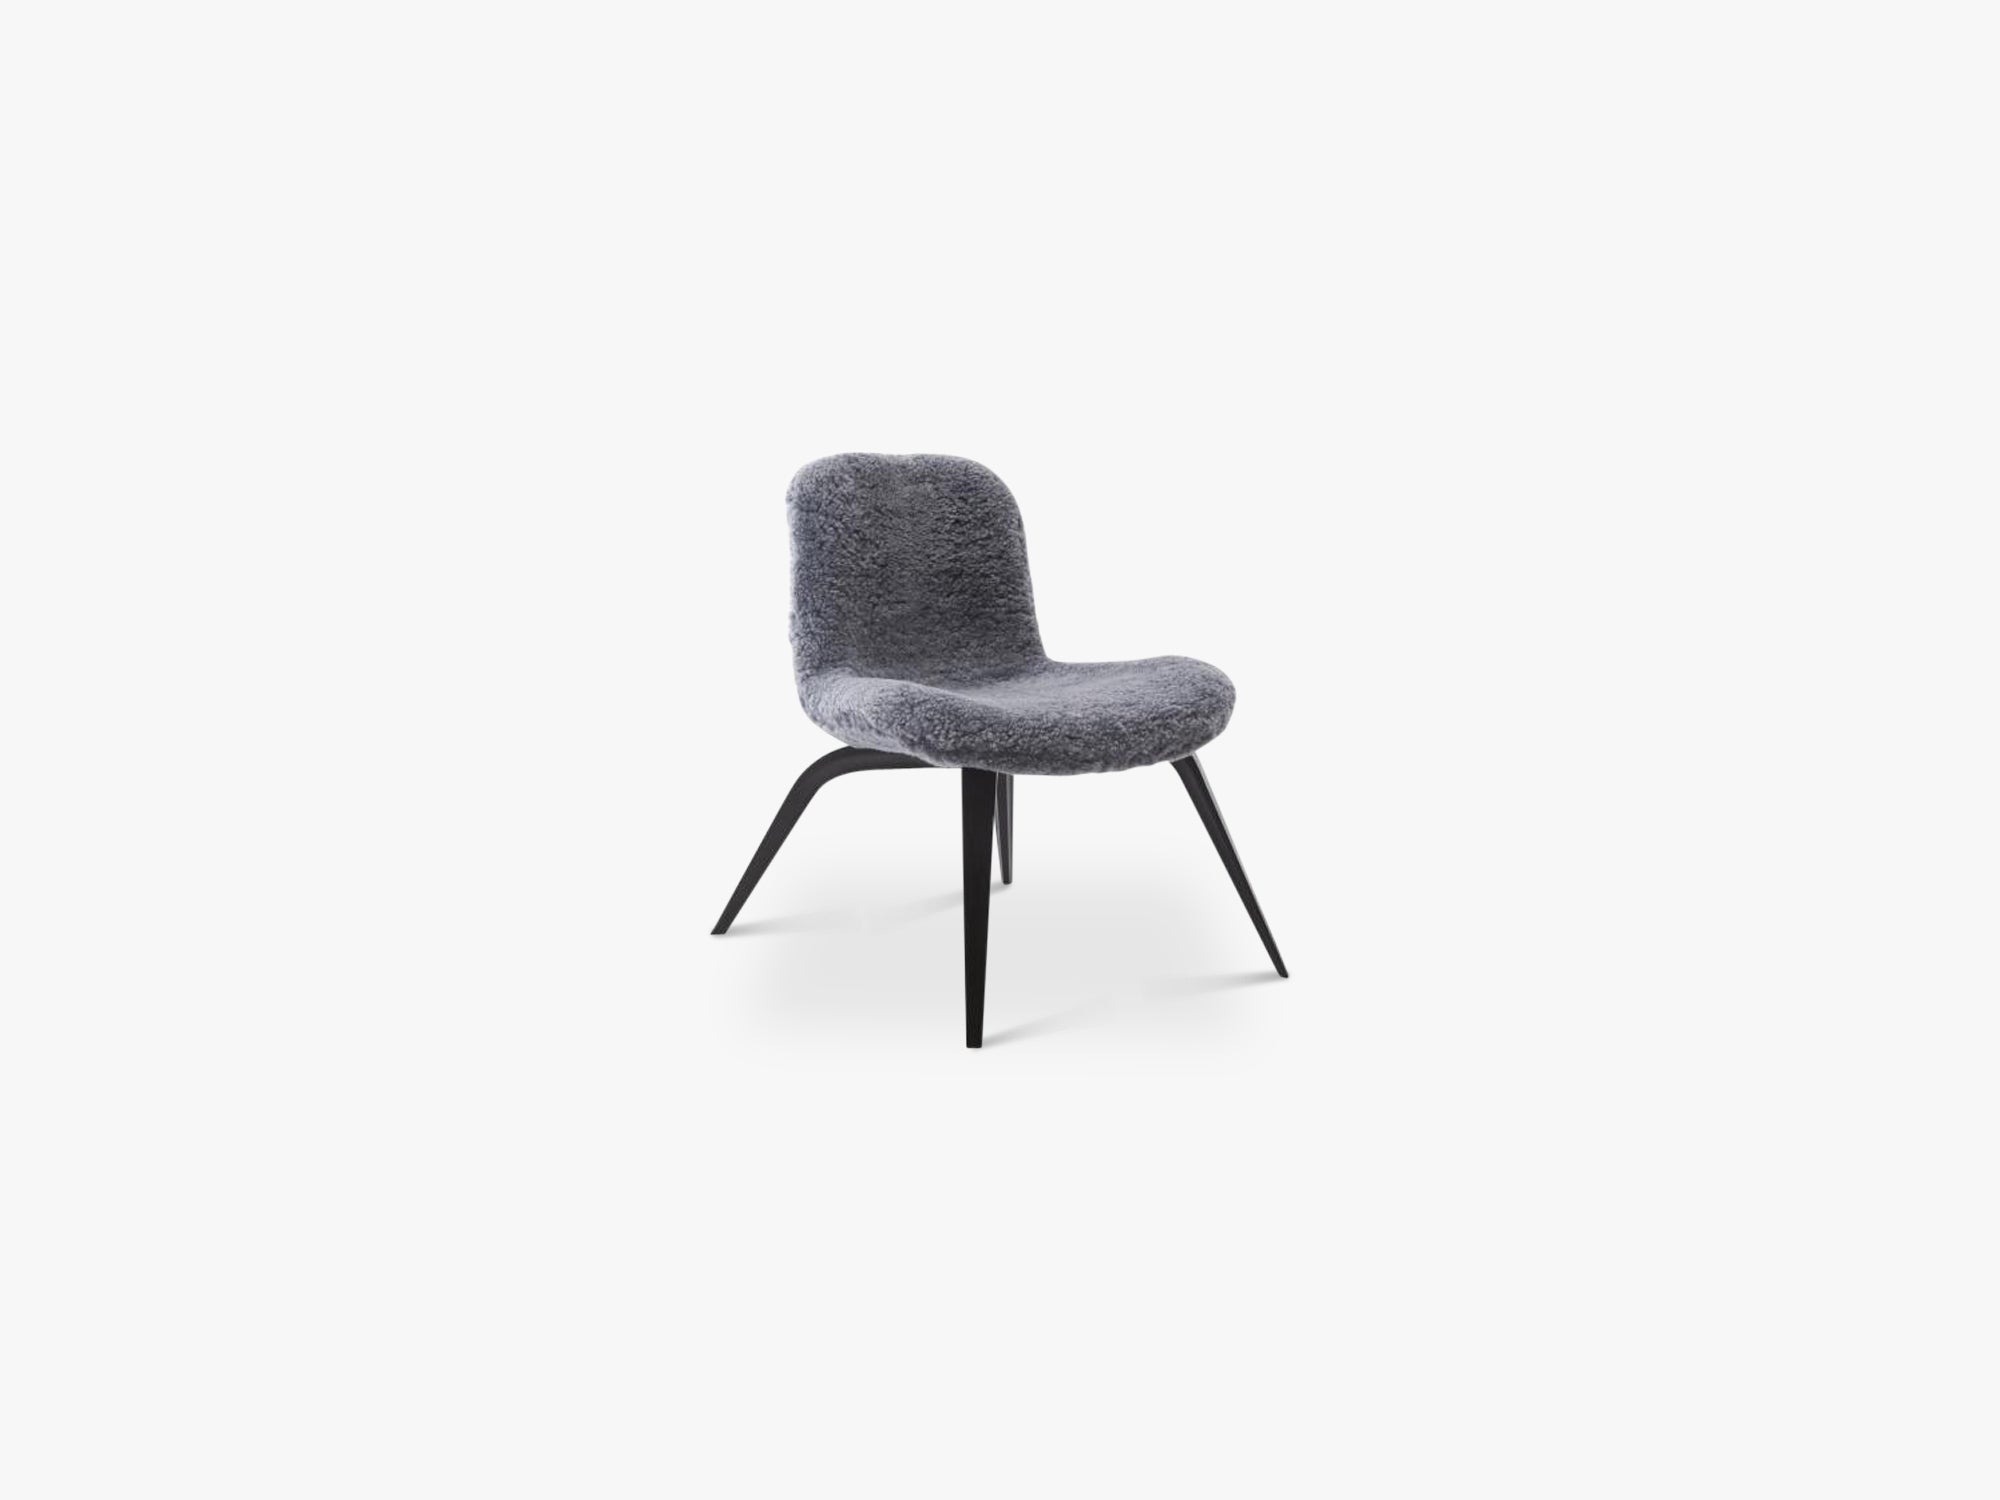 Goose Lounge Chair, Graphite Sheepskin fra NORR11